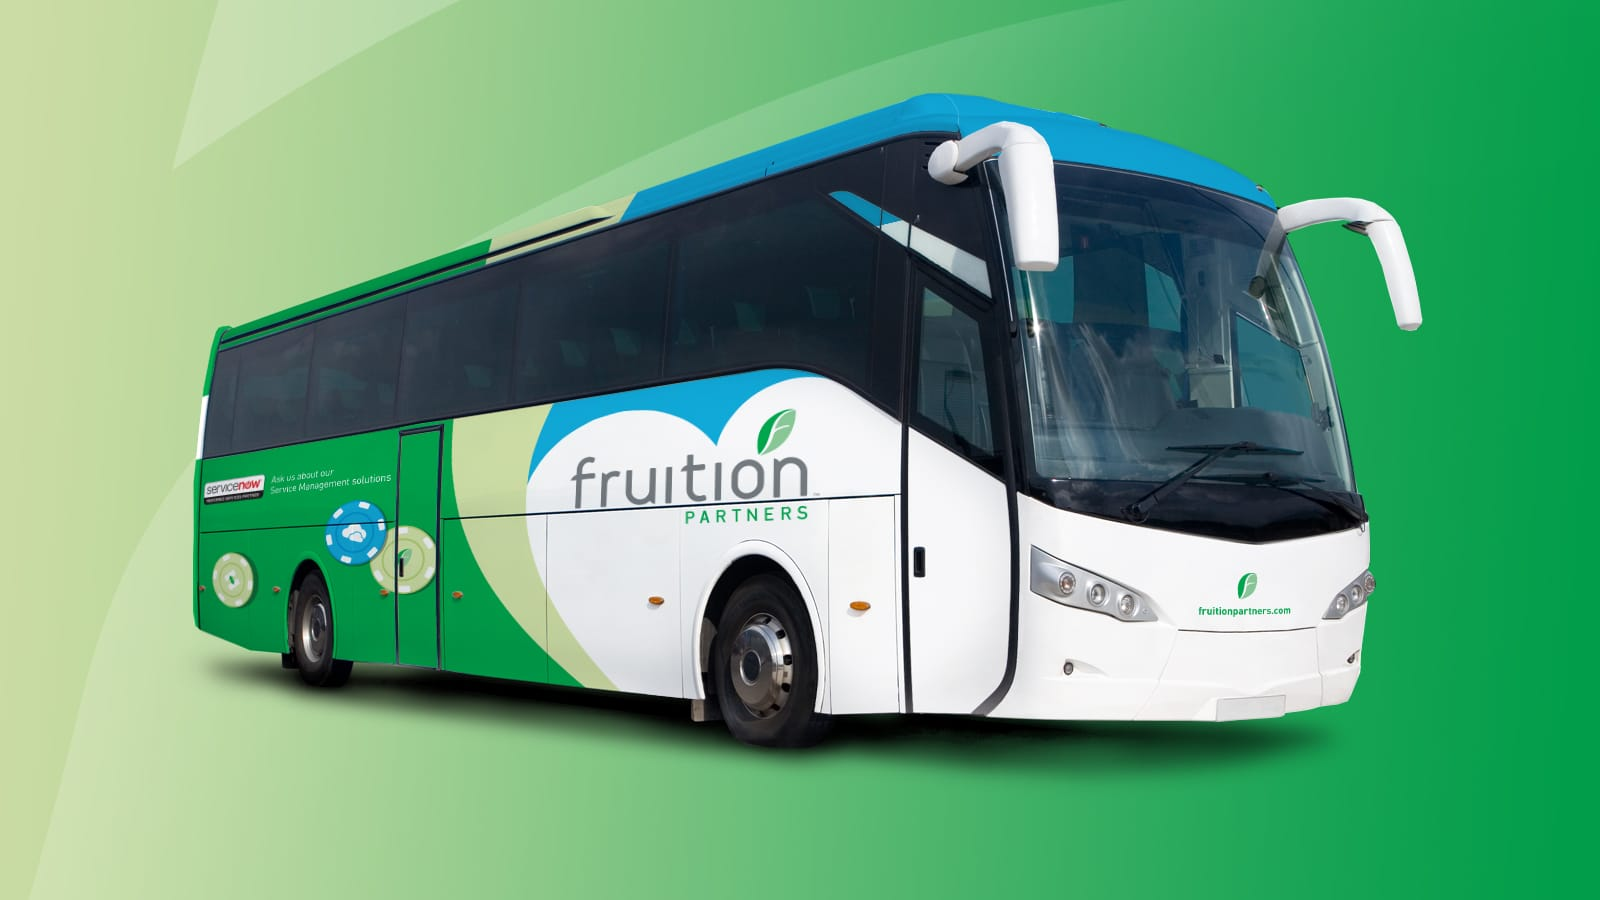 Fruition Partners graphics on full tour bus